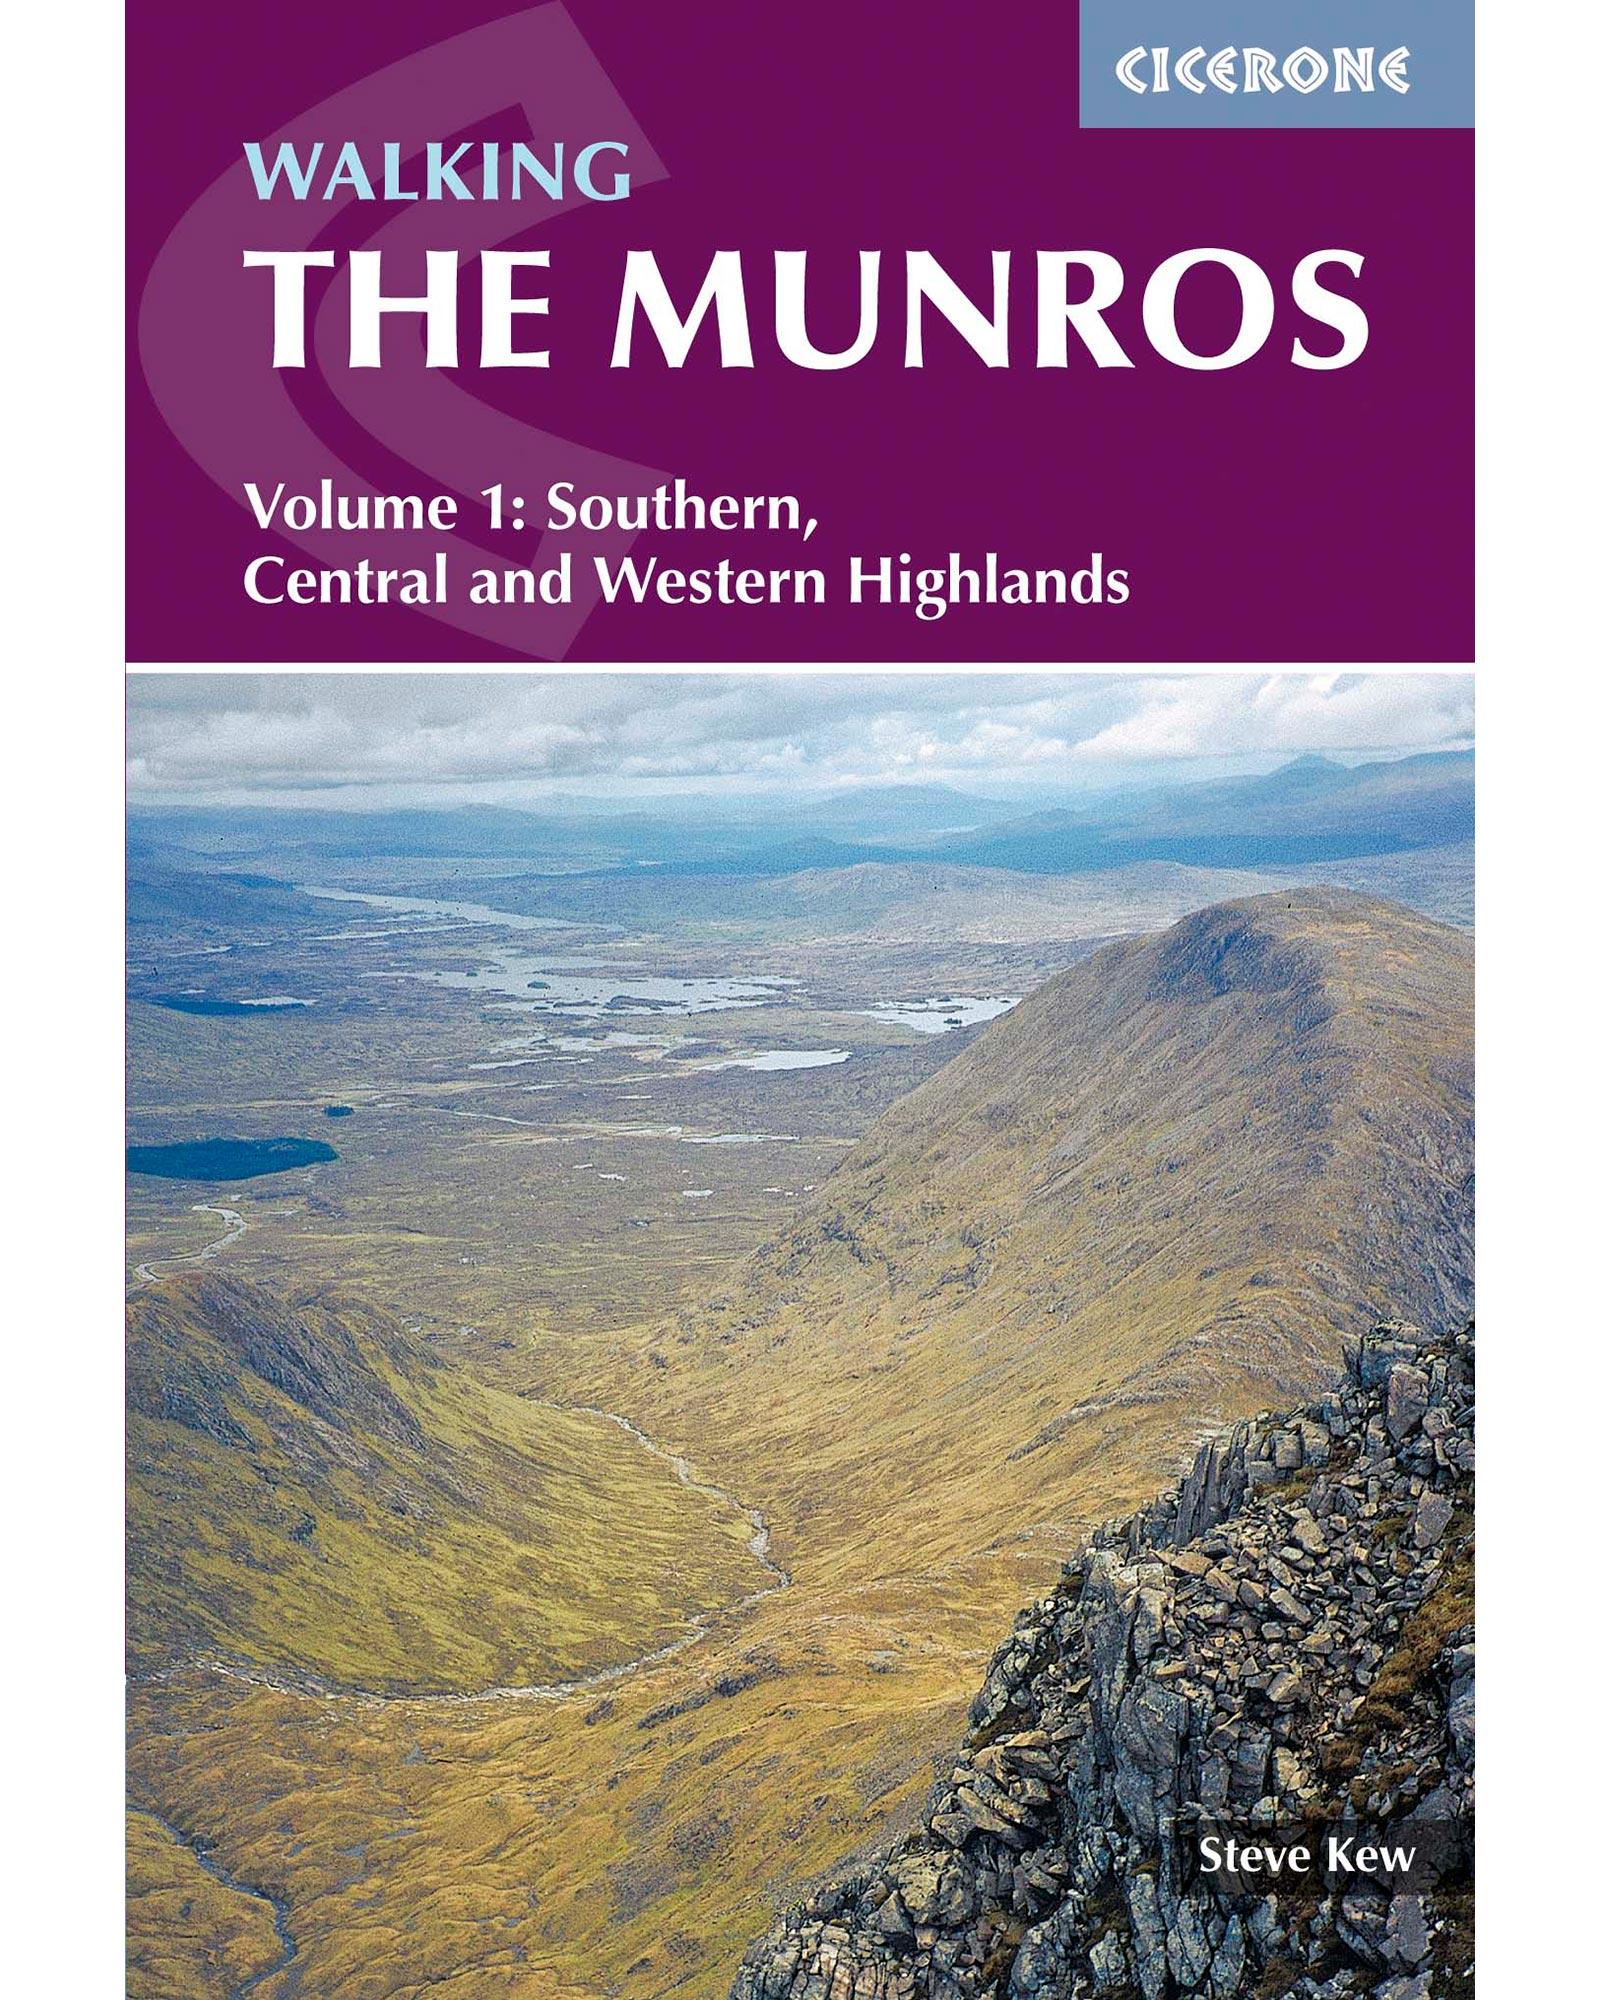 Cicerone The Munros Vol 1 S, Central and Western Highlands 0